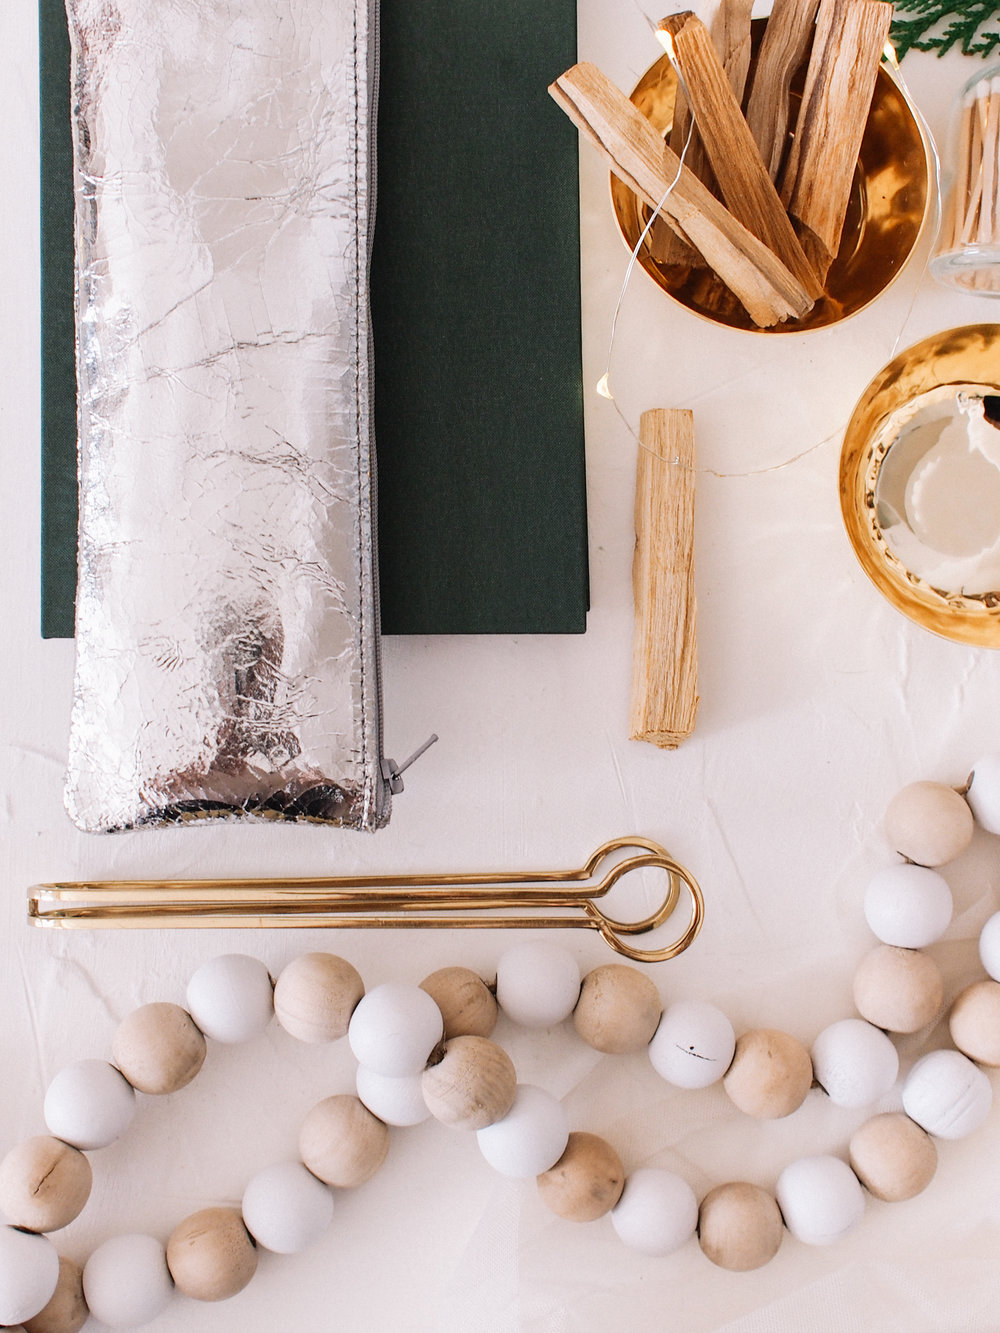 How to build a seasonal prop kit | A Fabulous Fete